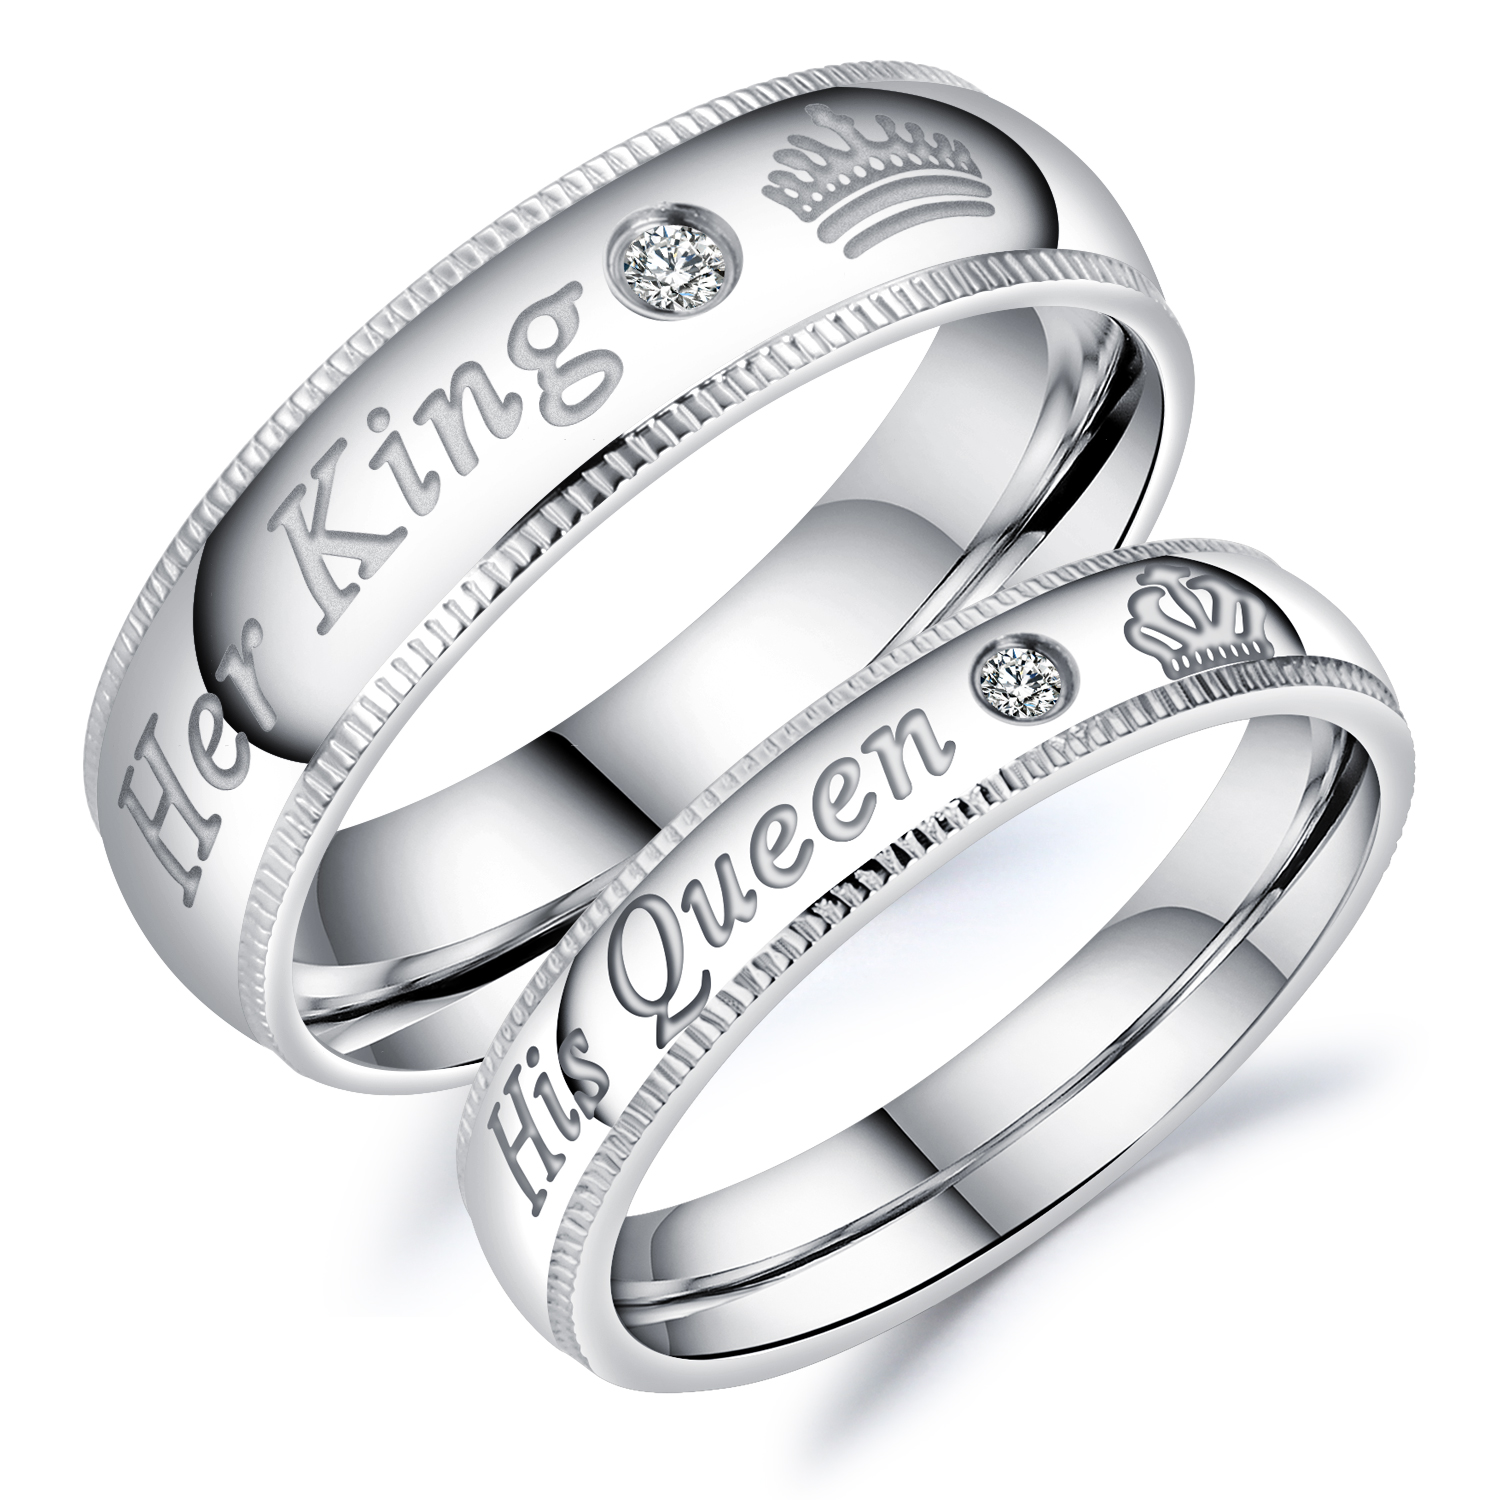 rings engagement wedding ring names couple gold couples pin for with